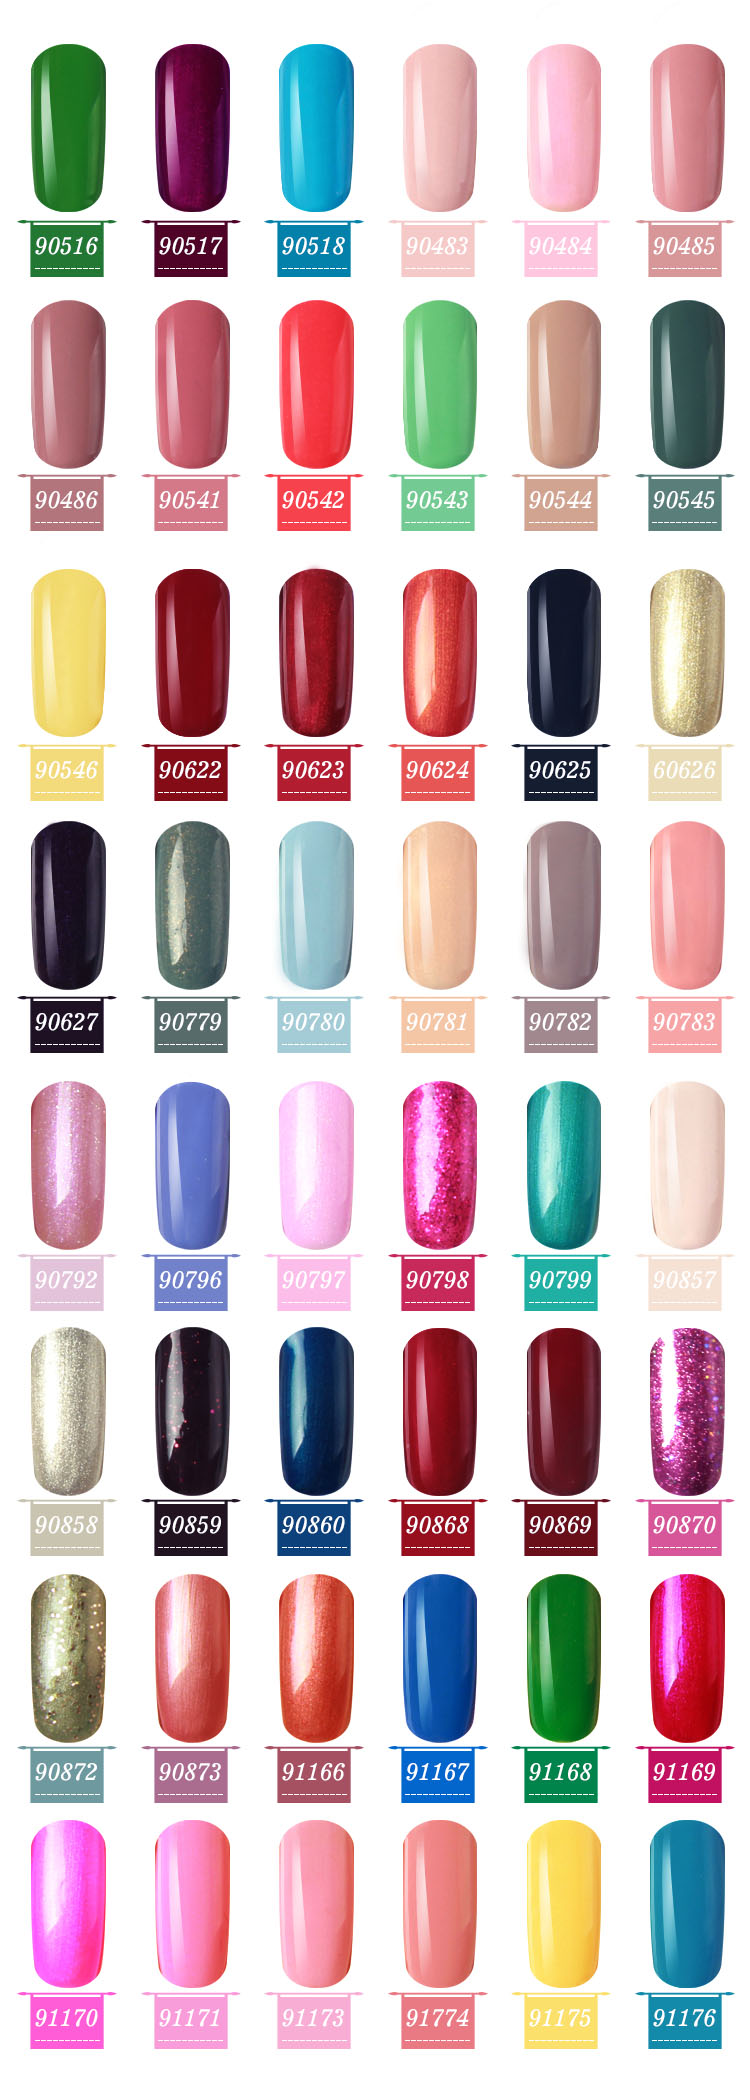 Professional manufacture supplies glaze nail polish finger gel polish